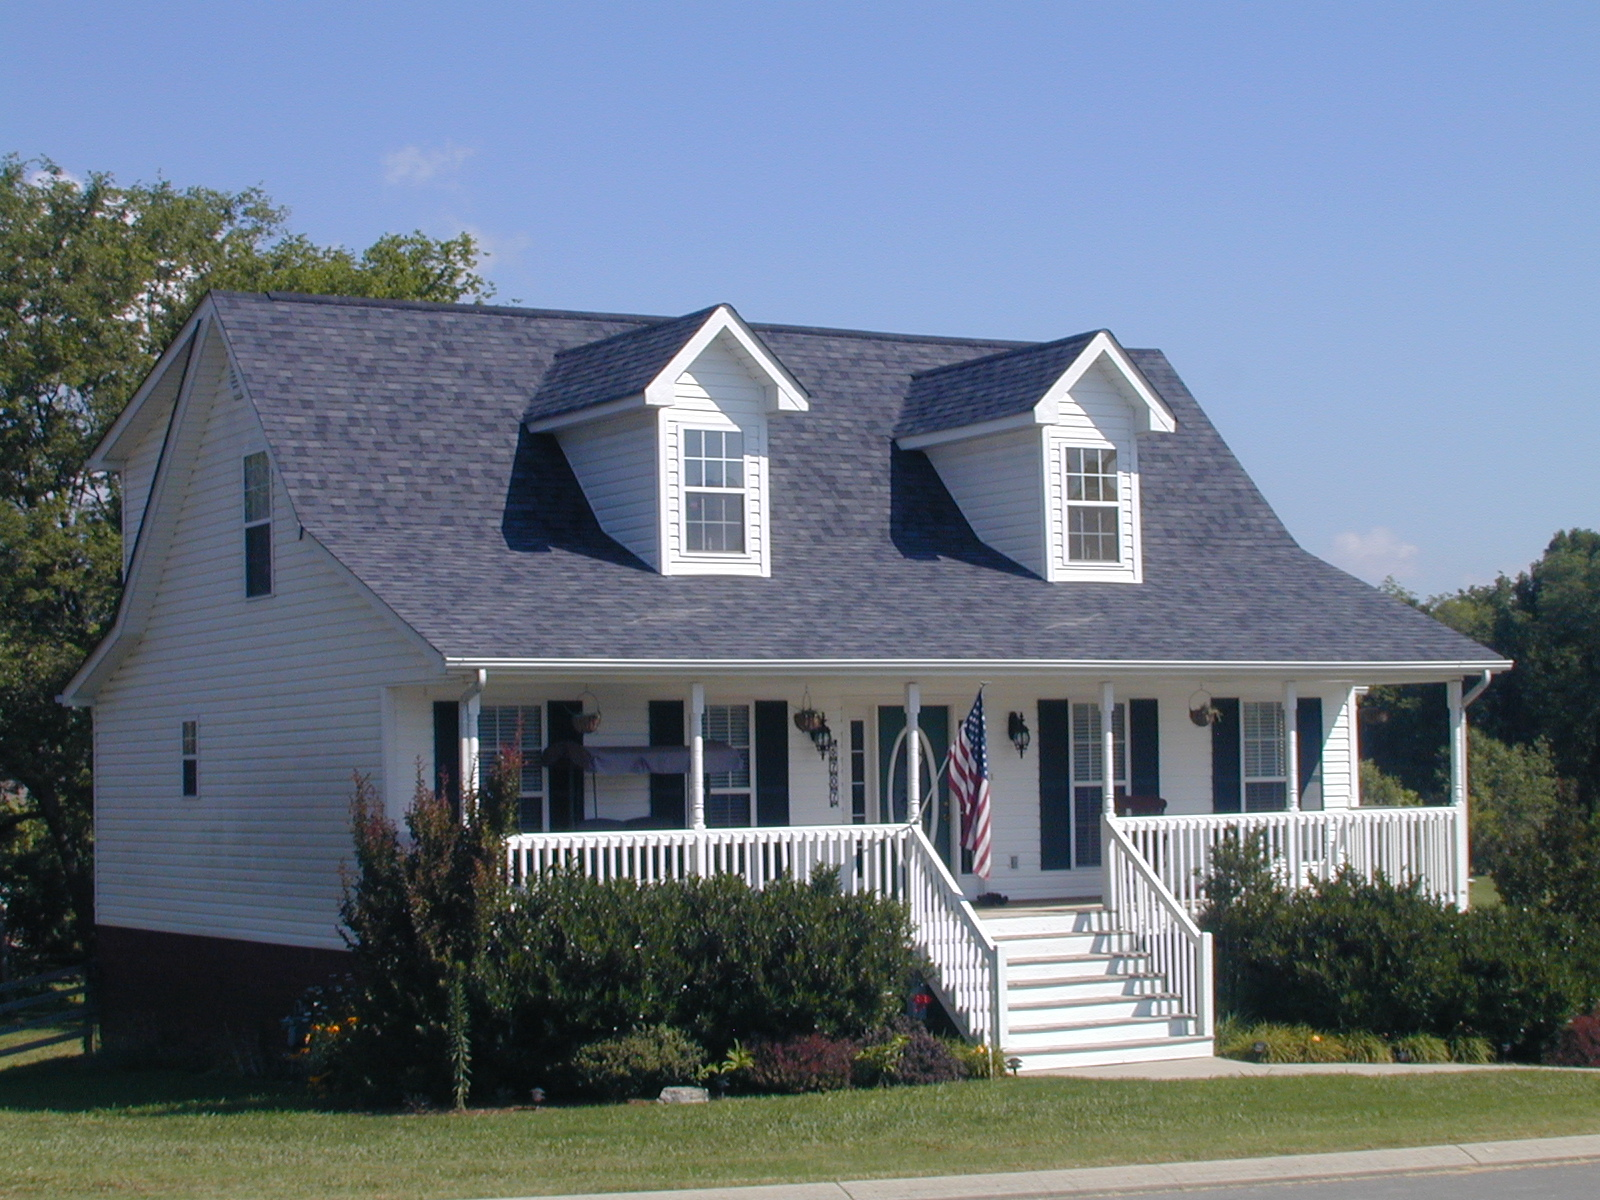 Homes for Sale in Cleveland, TN